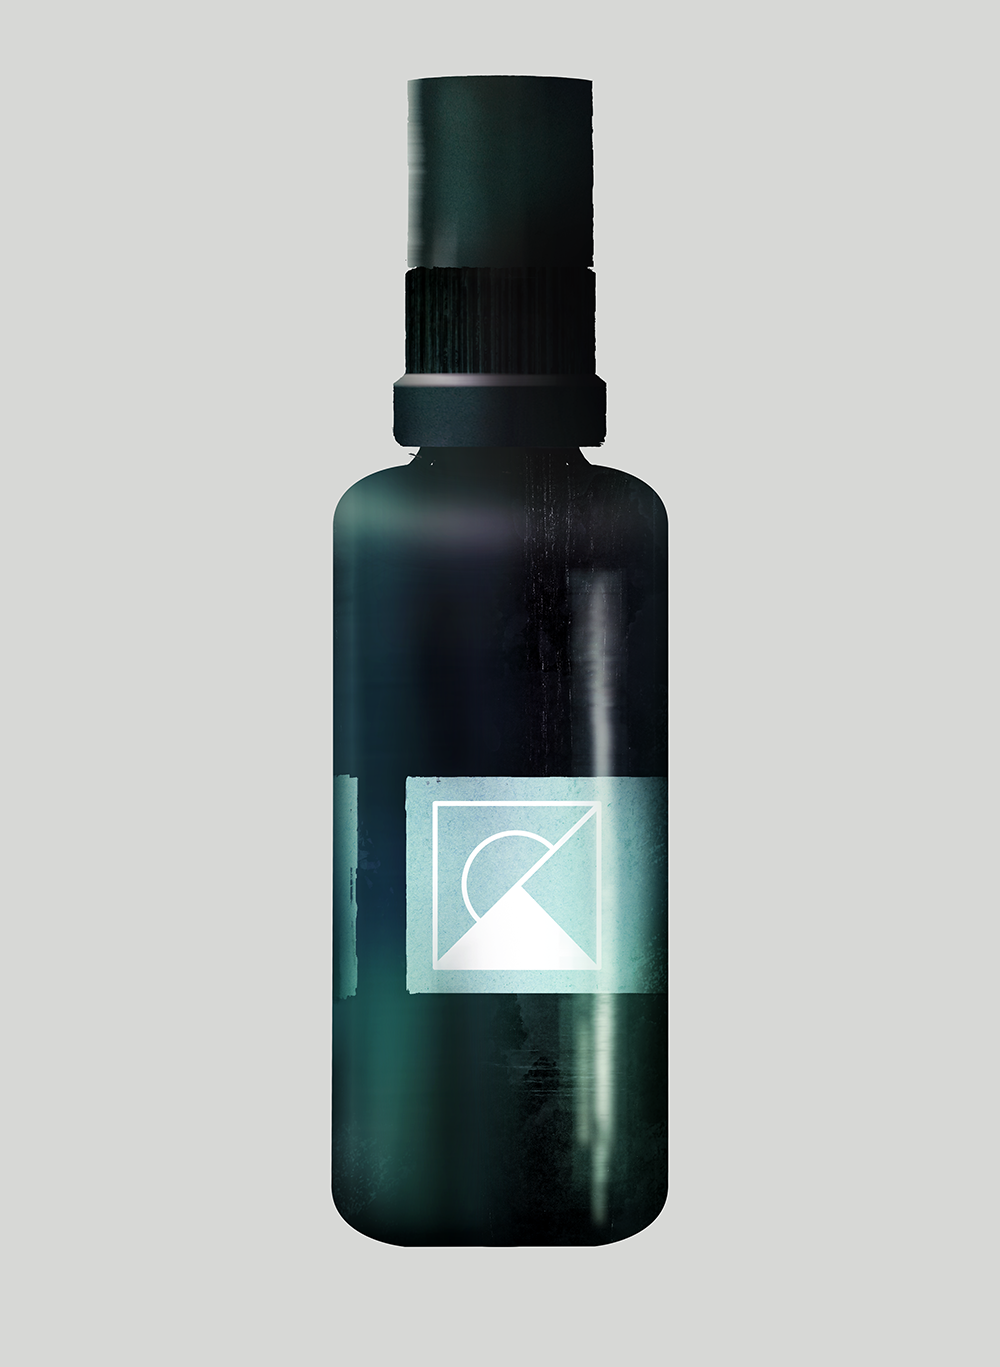 SIGIL_Bottle_GROUND_Illustration_by_Julie Smits.png